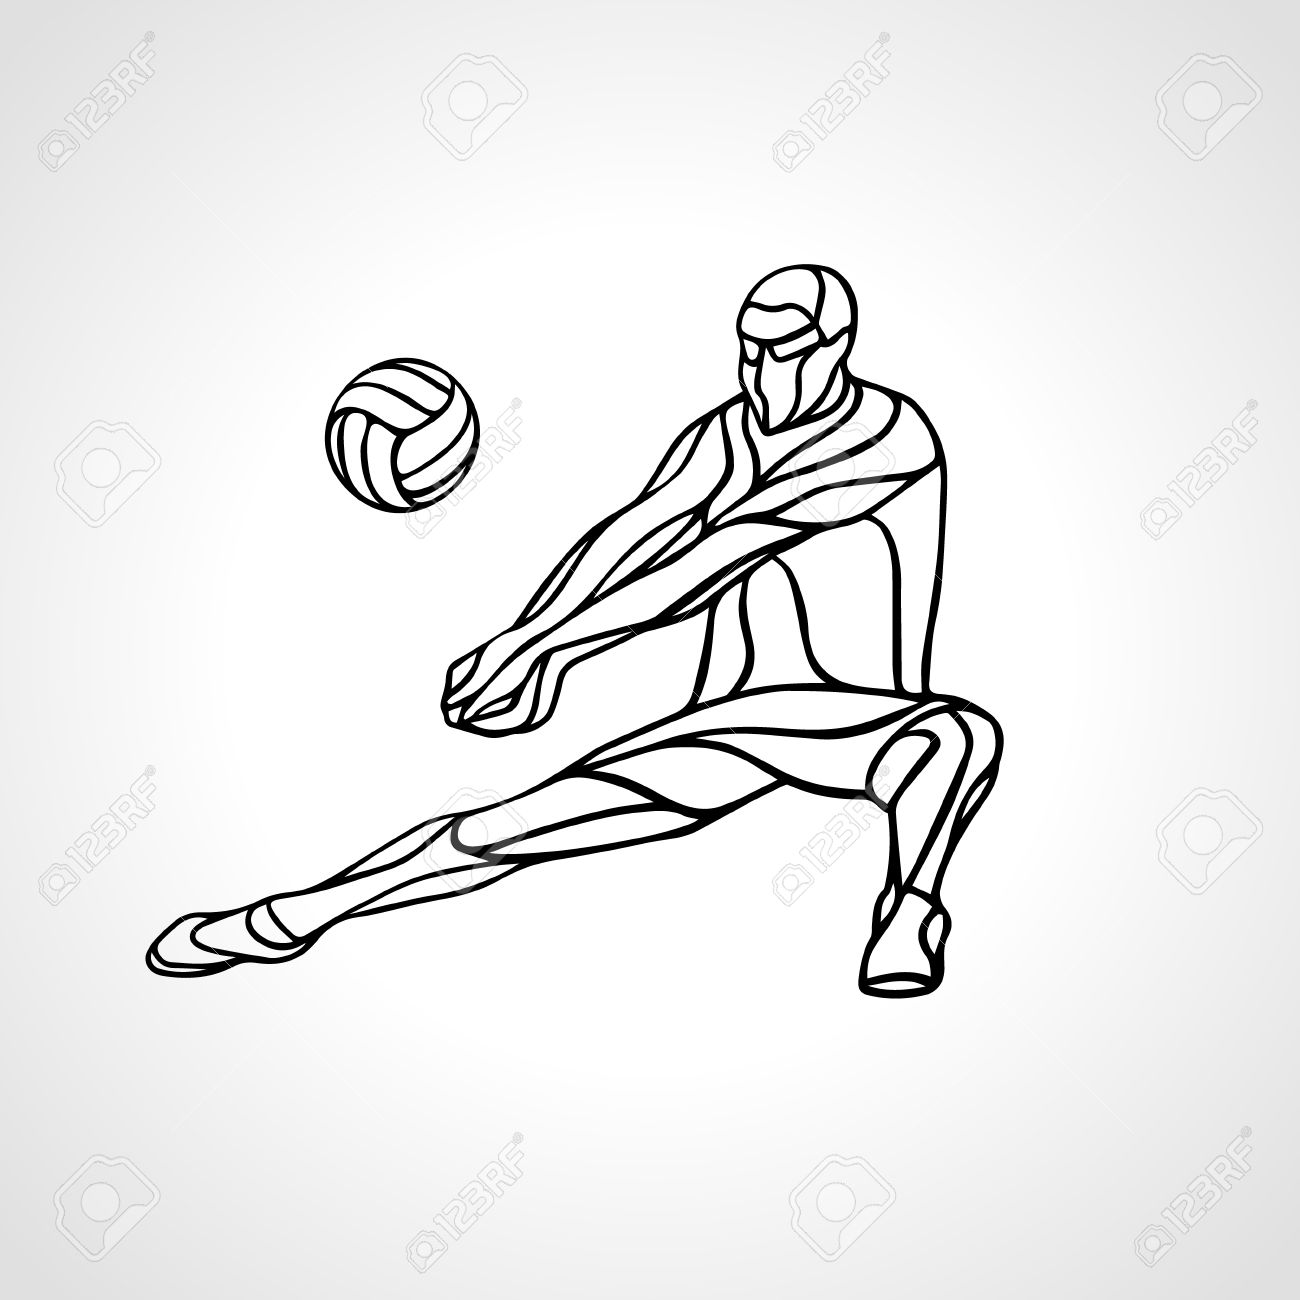 1300x1300 Volleyball Player Receiving Feed. Outline Silhouette Of A Abstract